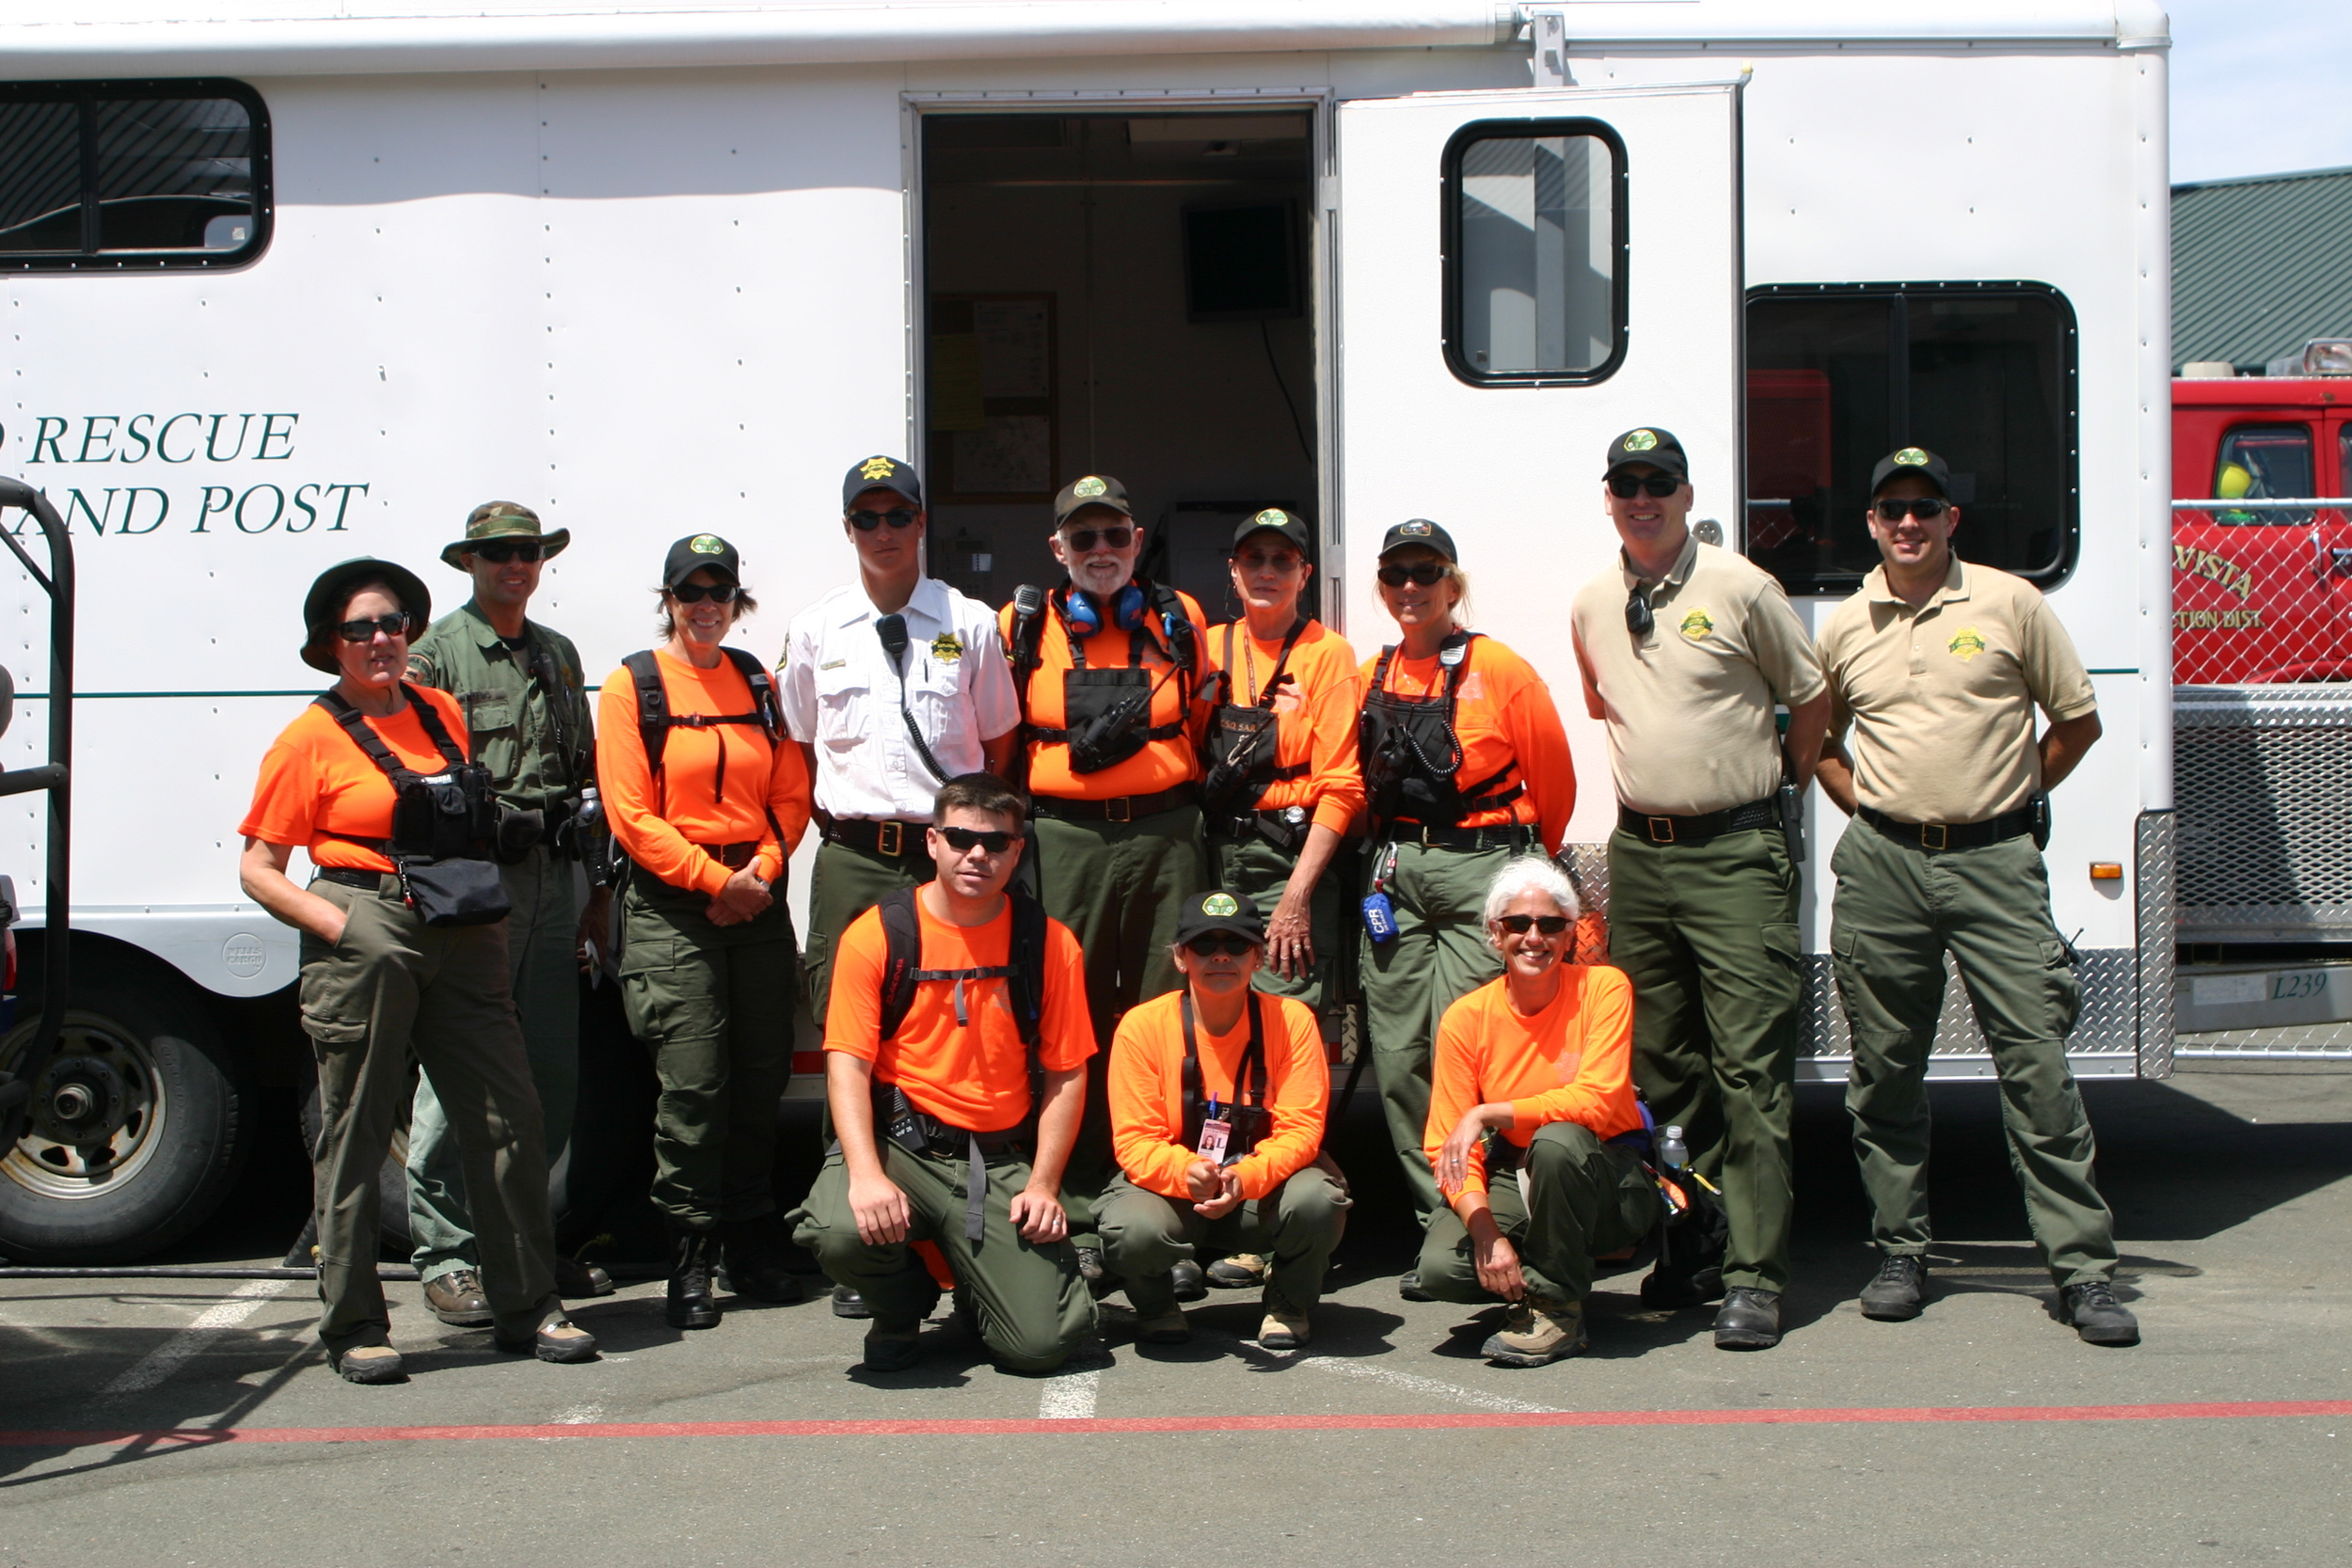 Search and Rescue team pauses for a photo opportunity at the SAR trailer.